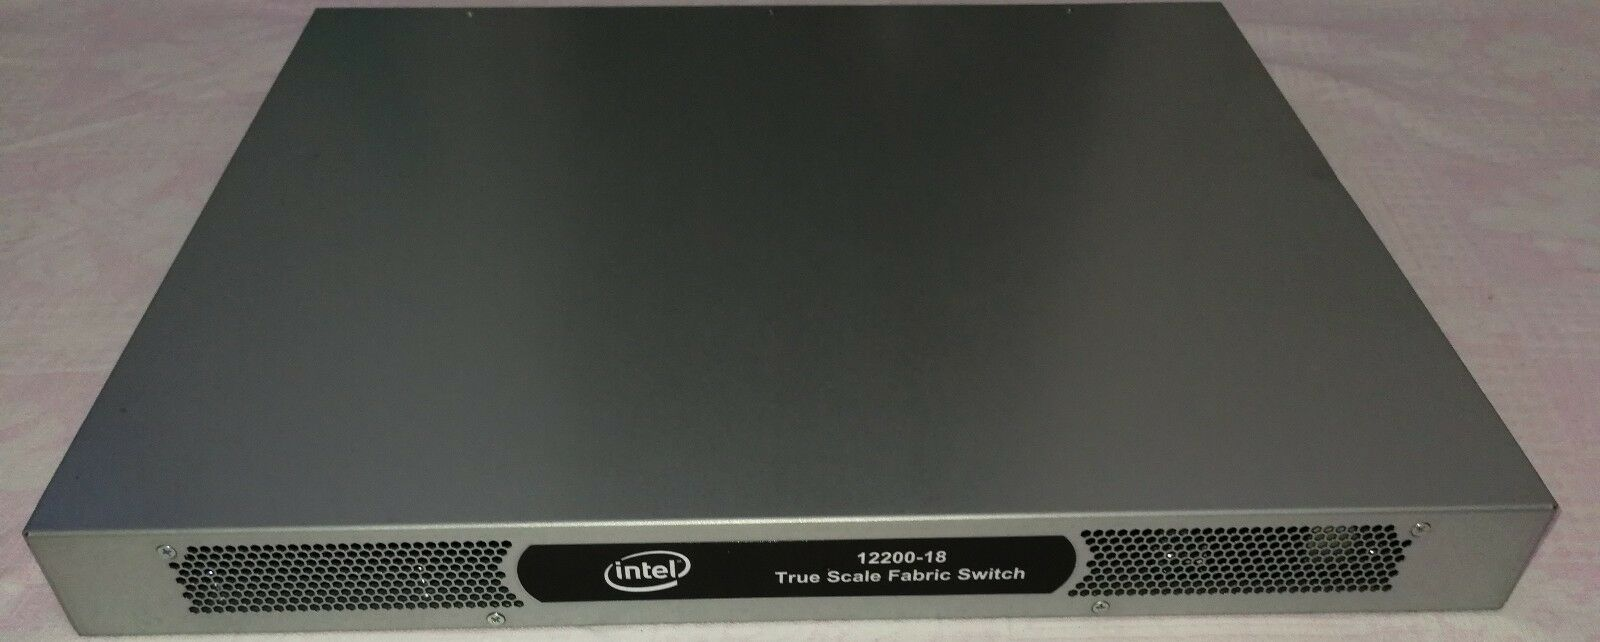 Intel True Scale Fabric Edge Managed Switch 12200 Driver Download